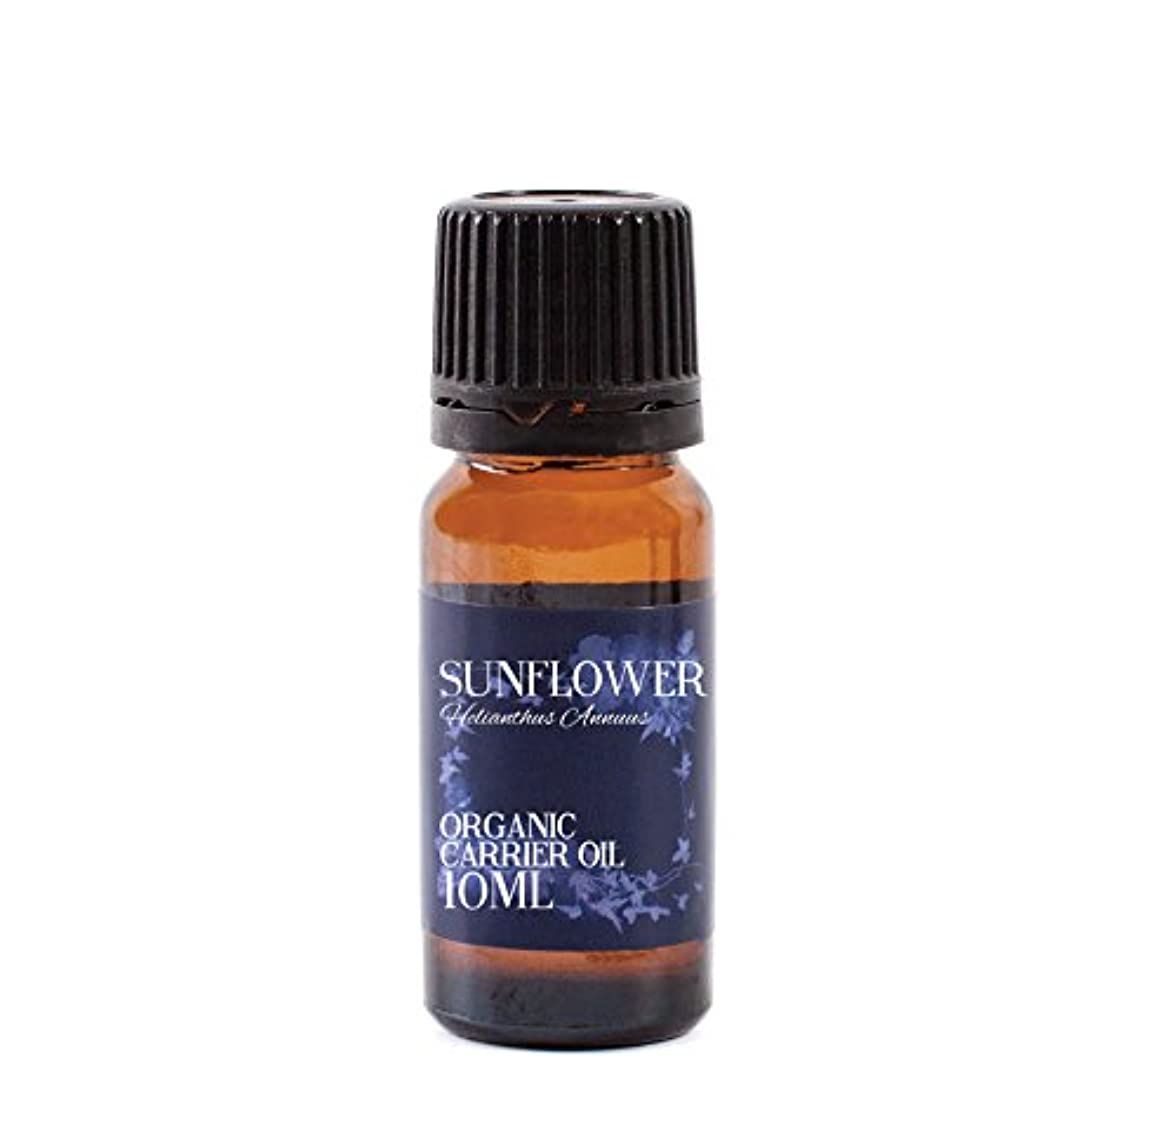 Mystic Moments   Sunflower Organic Carrier Oil - 10ml - 100% Pure